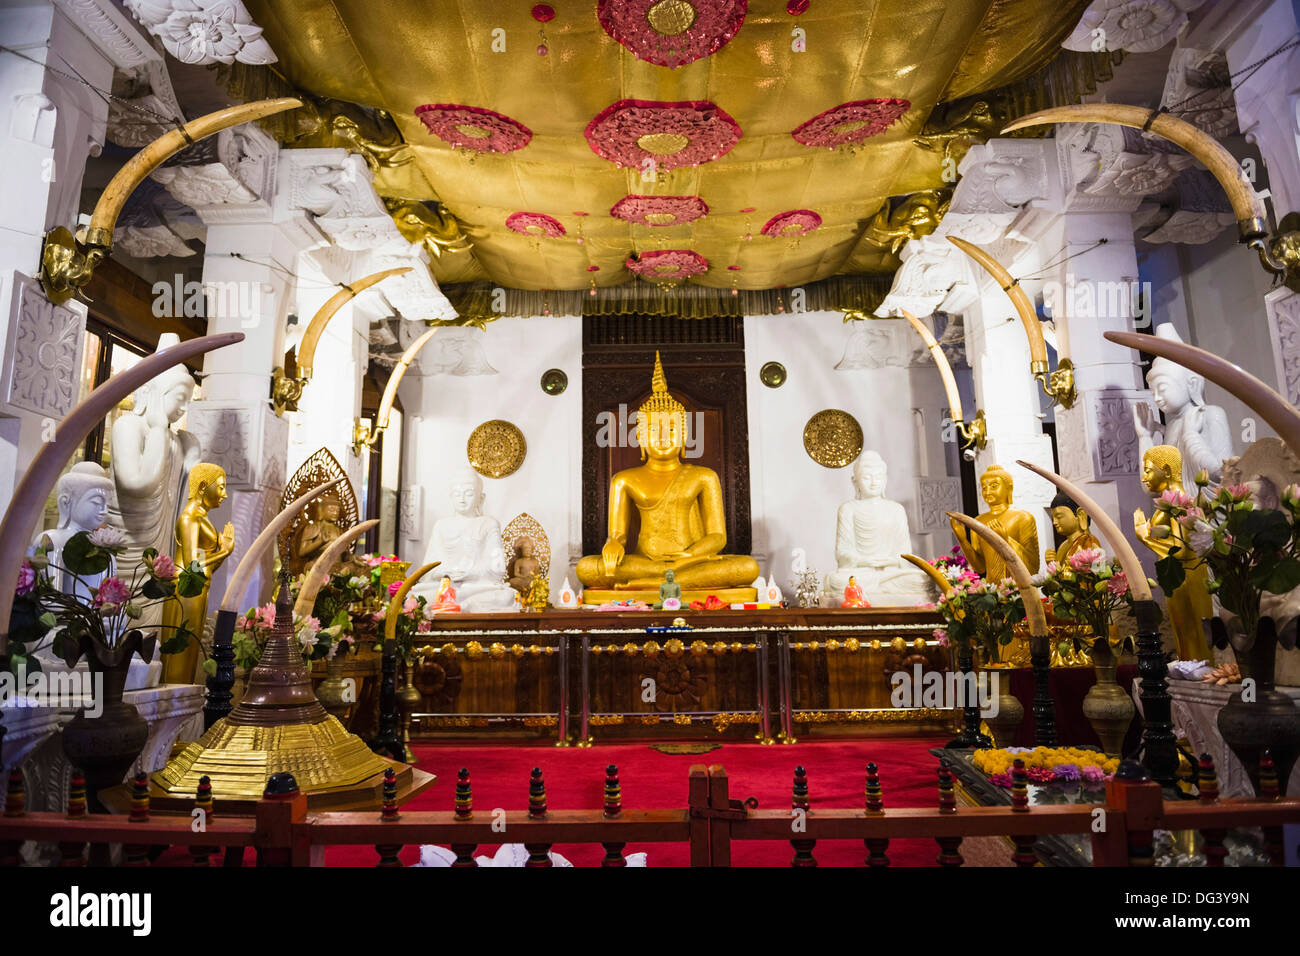 Places Of Worship Sacred To Buddhism Stock Photos & Places